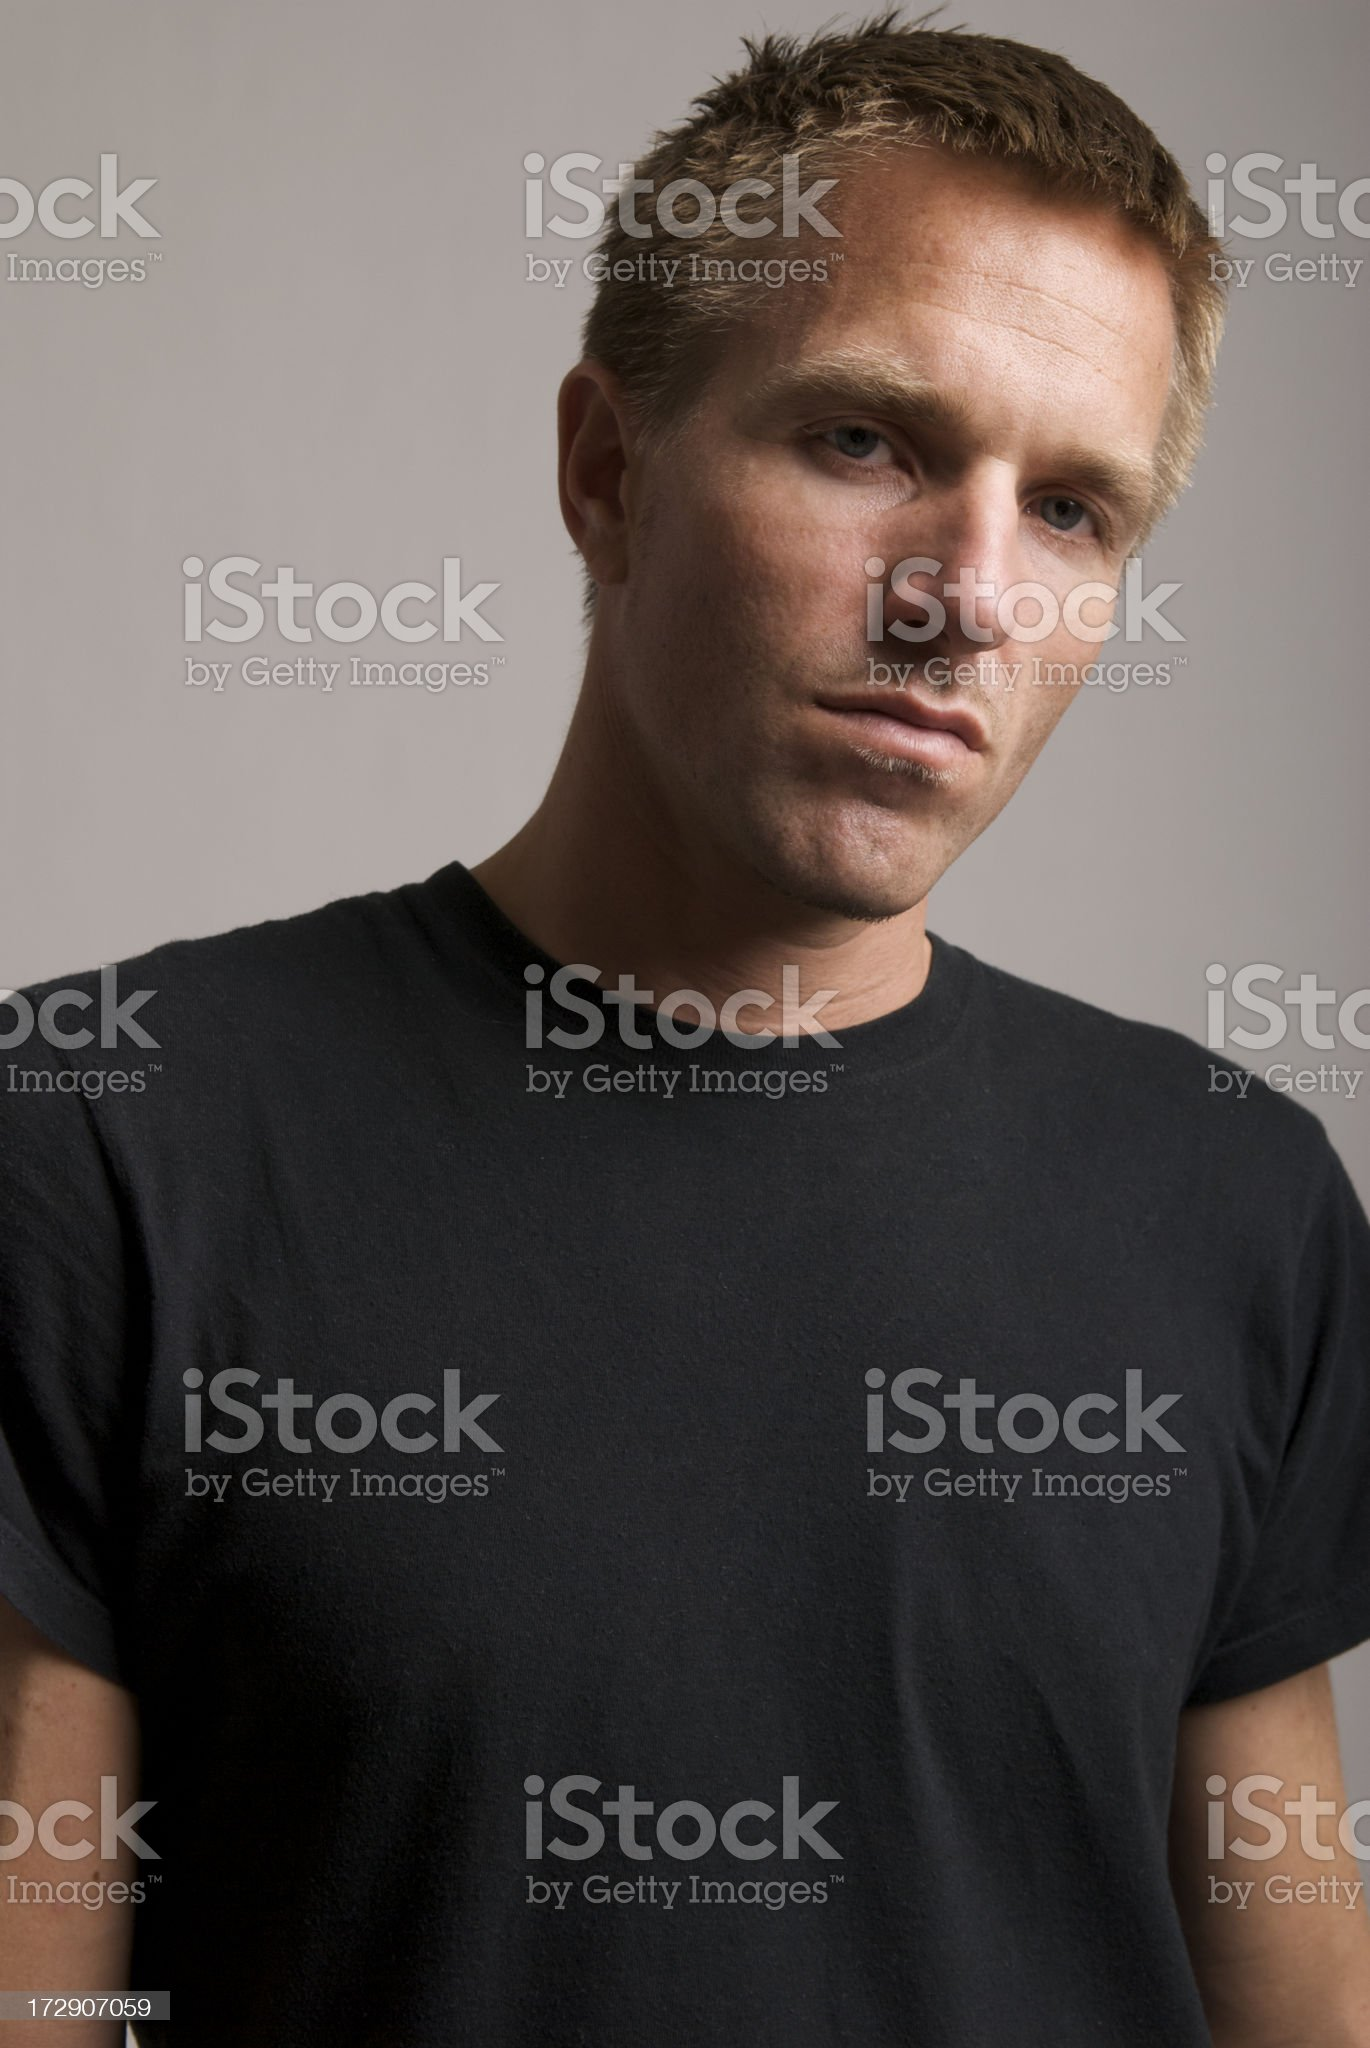 Young Man Blond Hair Black T-Shirt Serious Portrait Indoors royalty-free stock photo